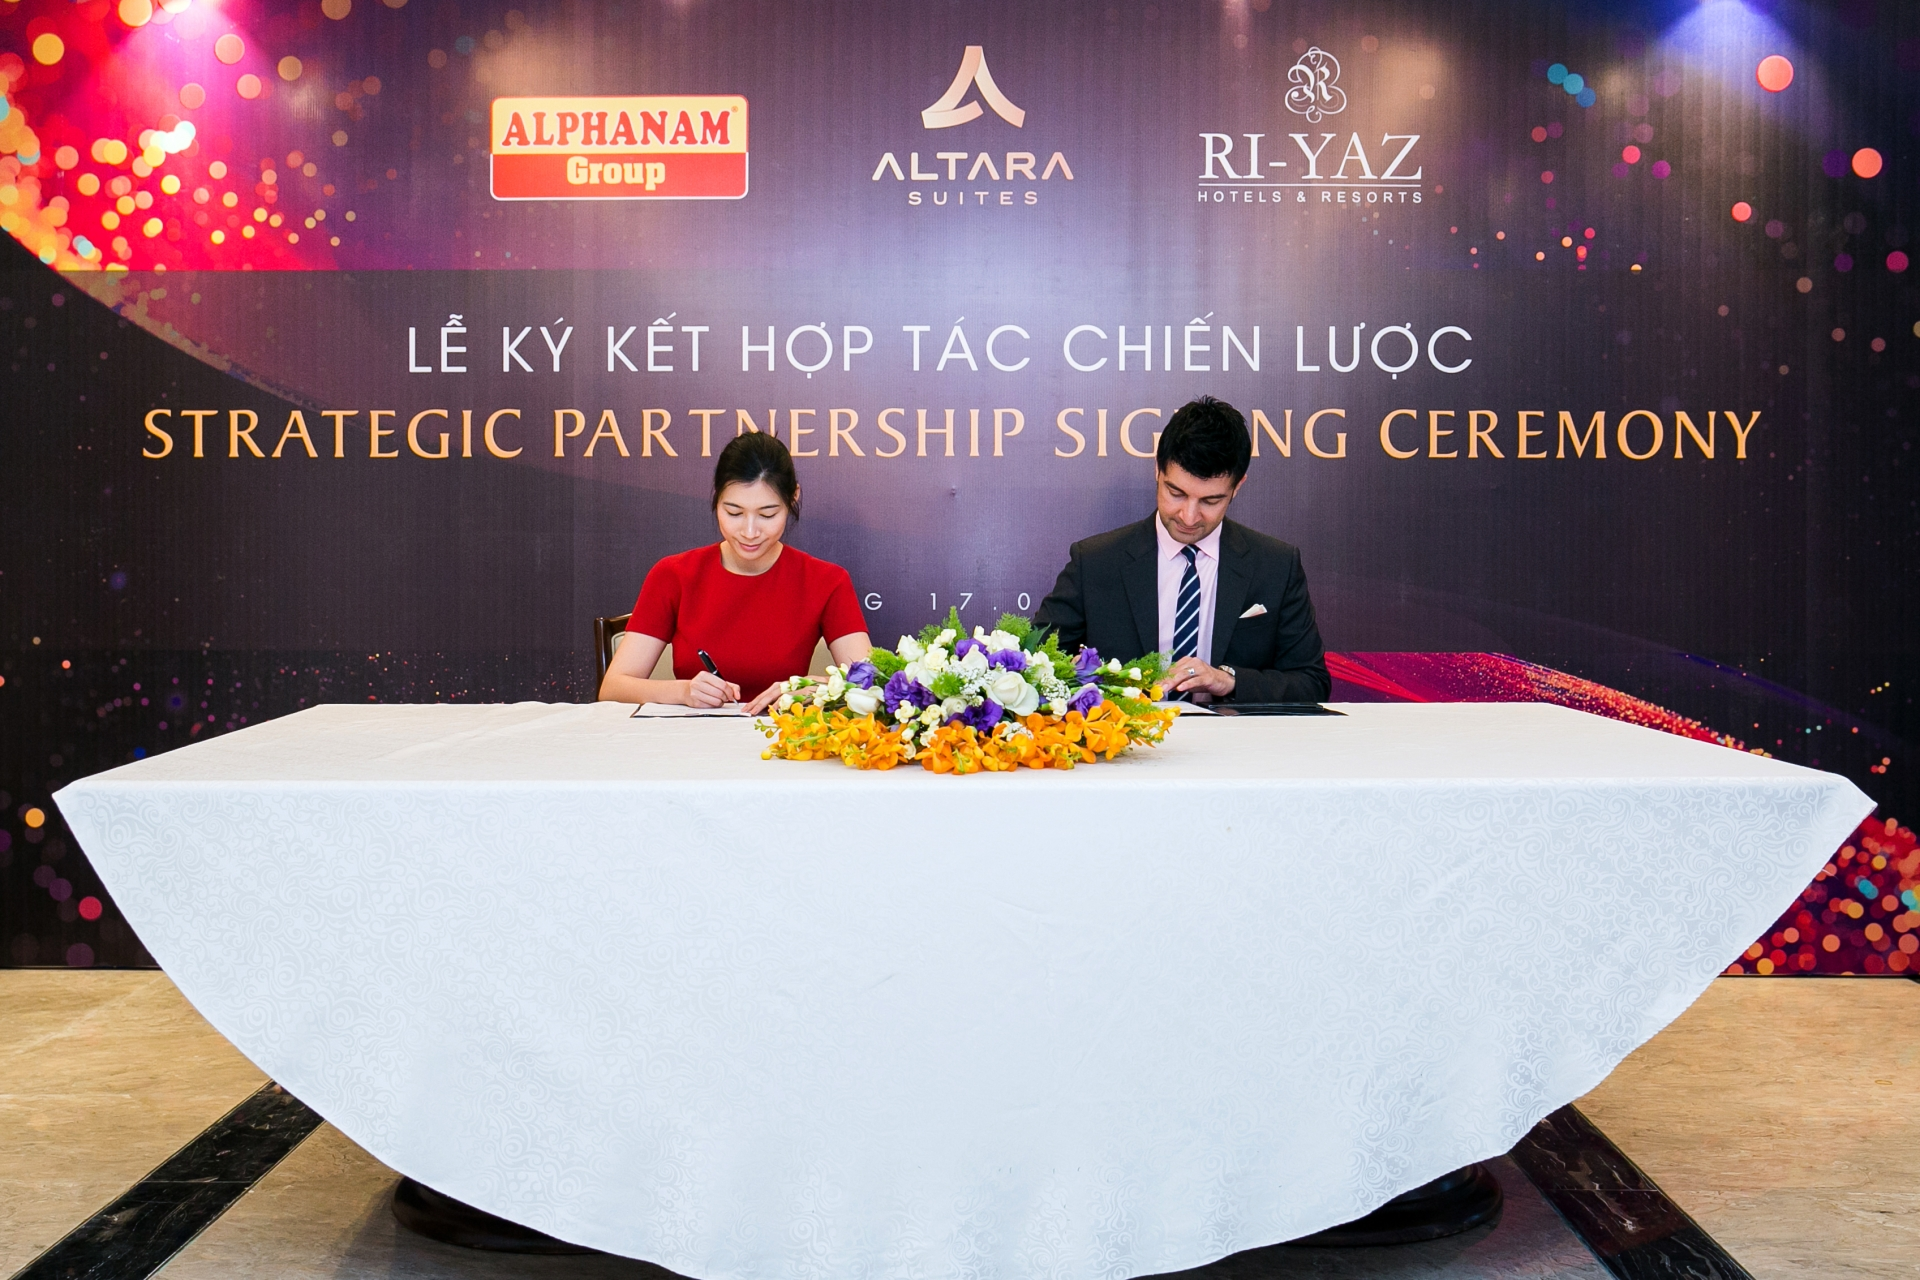 altara suites aims to reach danang top 10